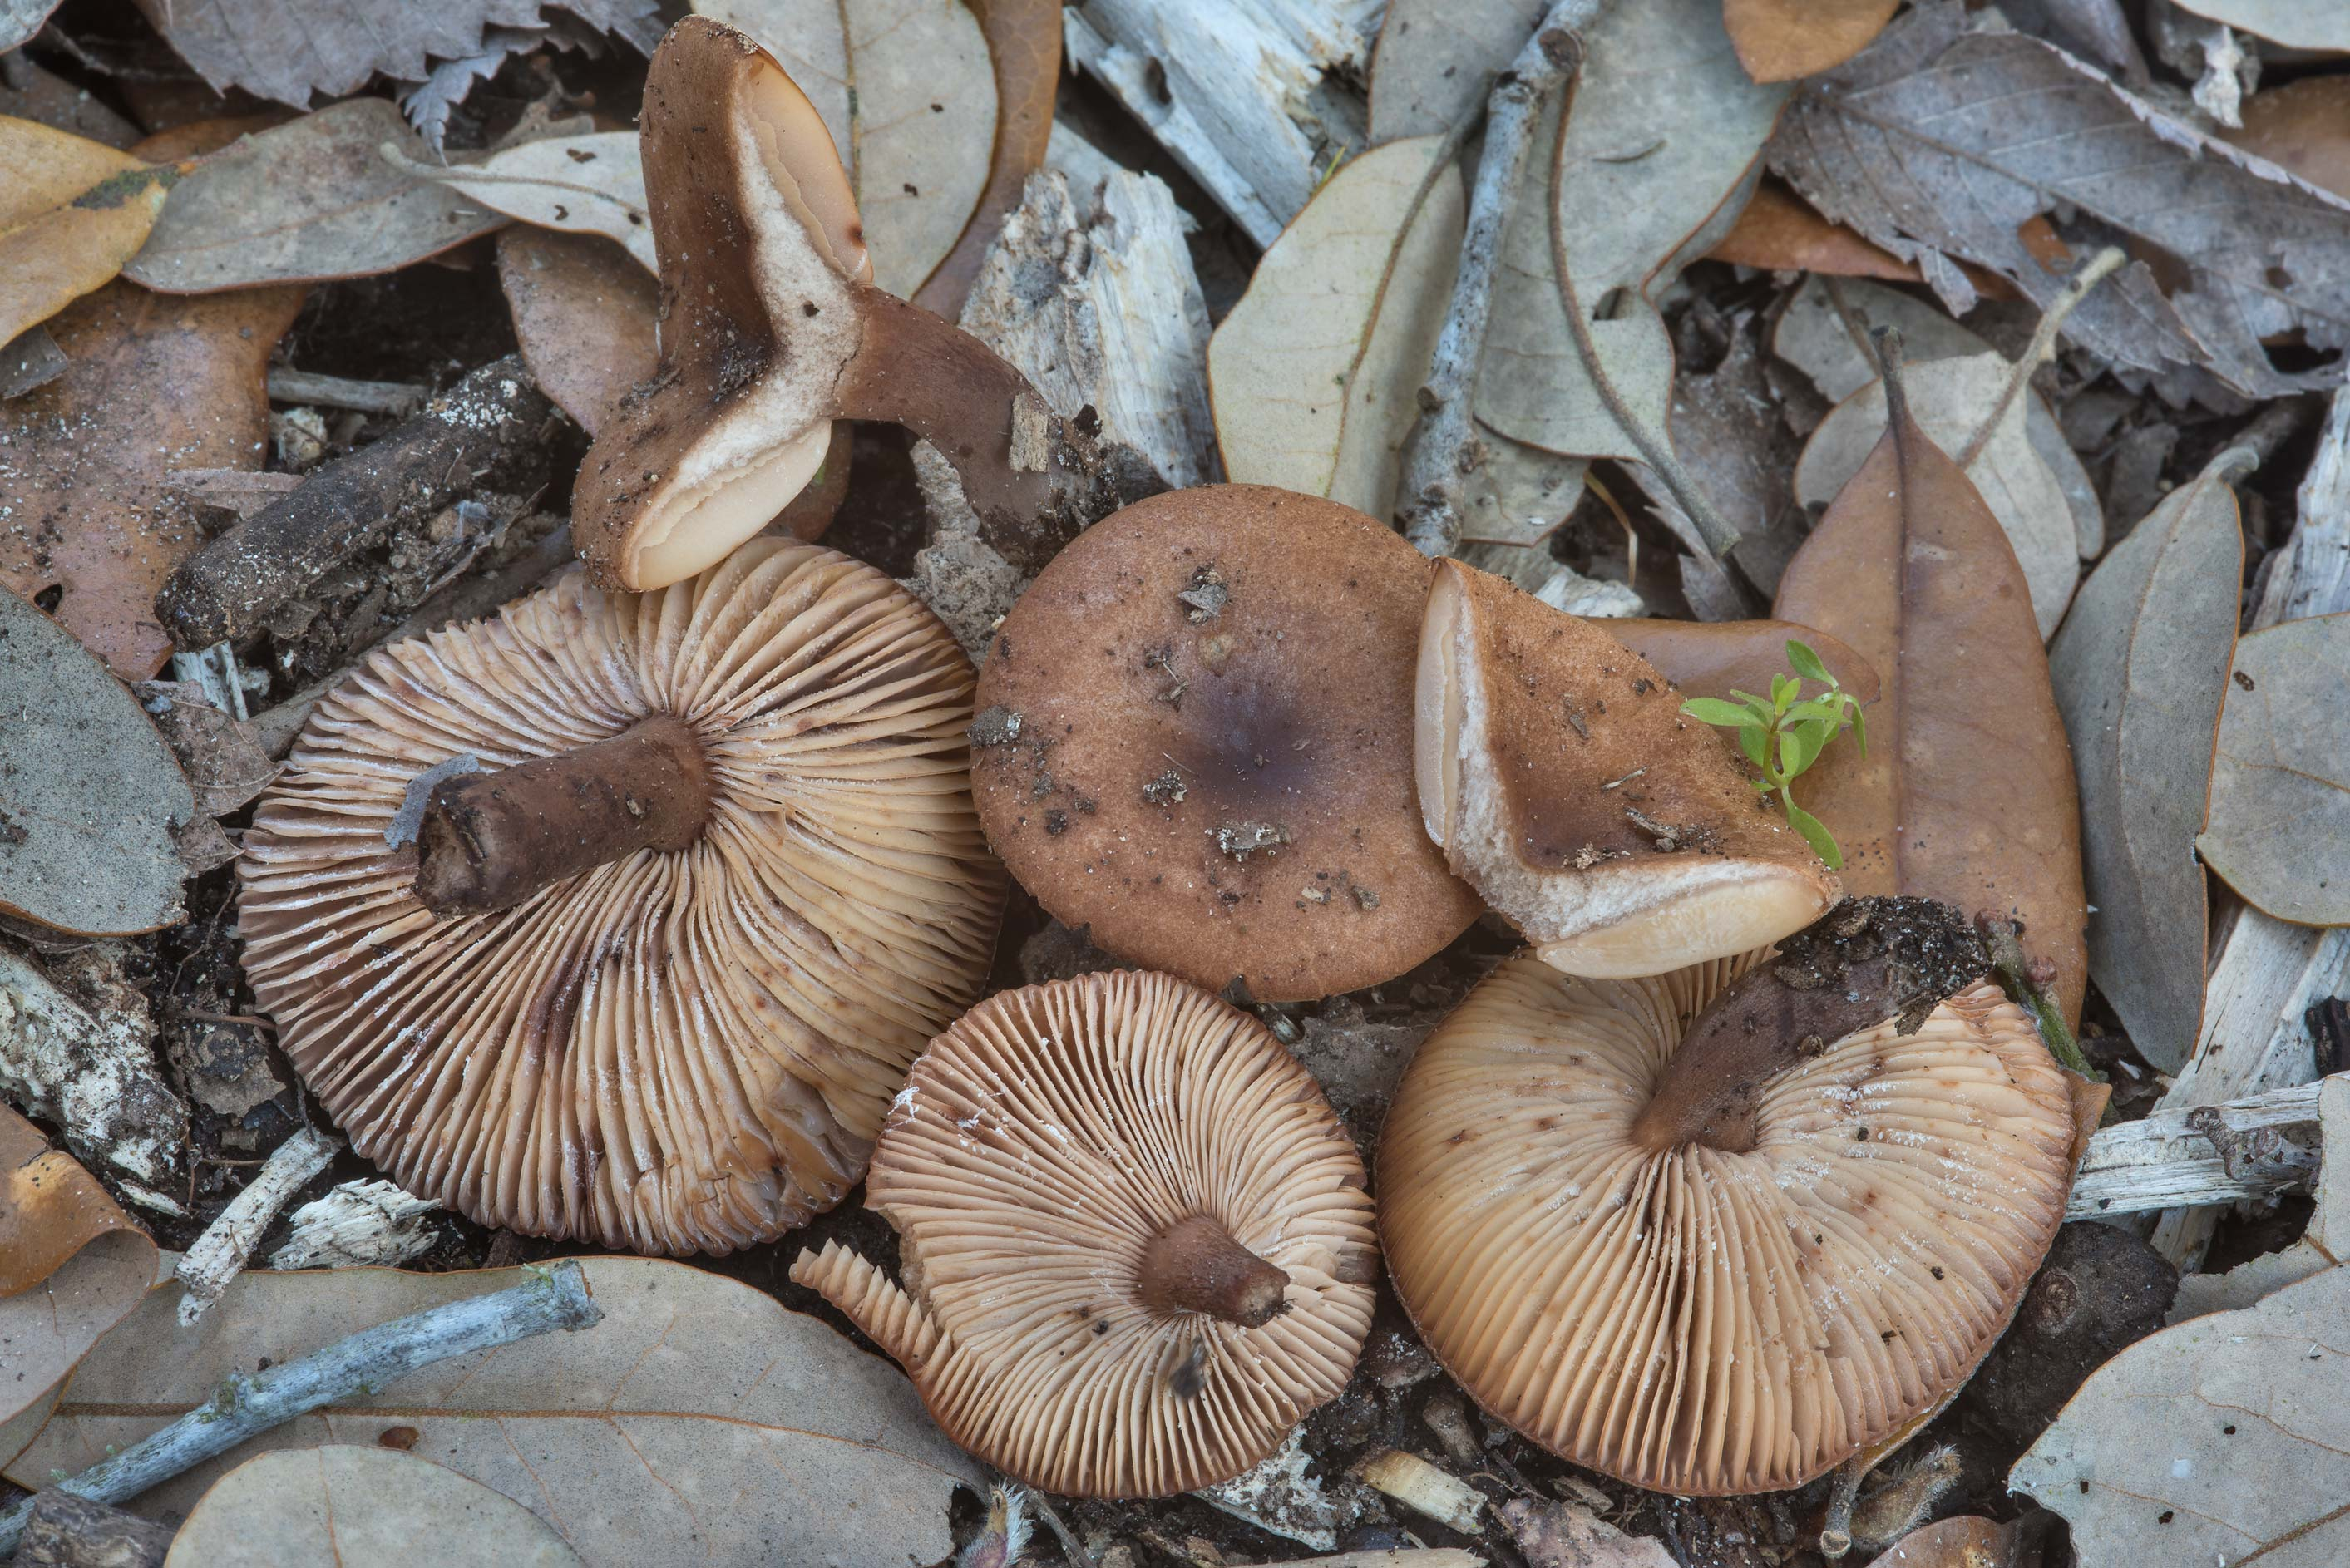 Milkcap mushrooms (Lactarius) near a road along...Unit Somerville Lake State Park. Texas